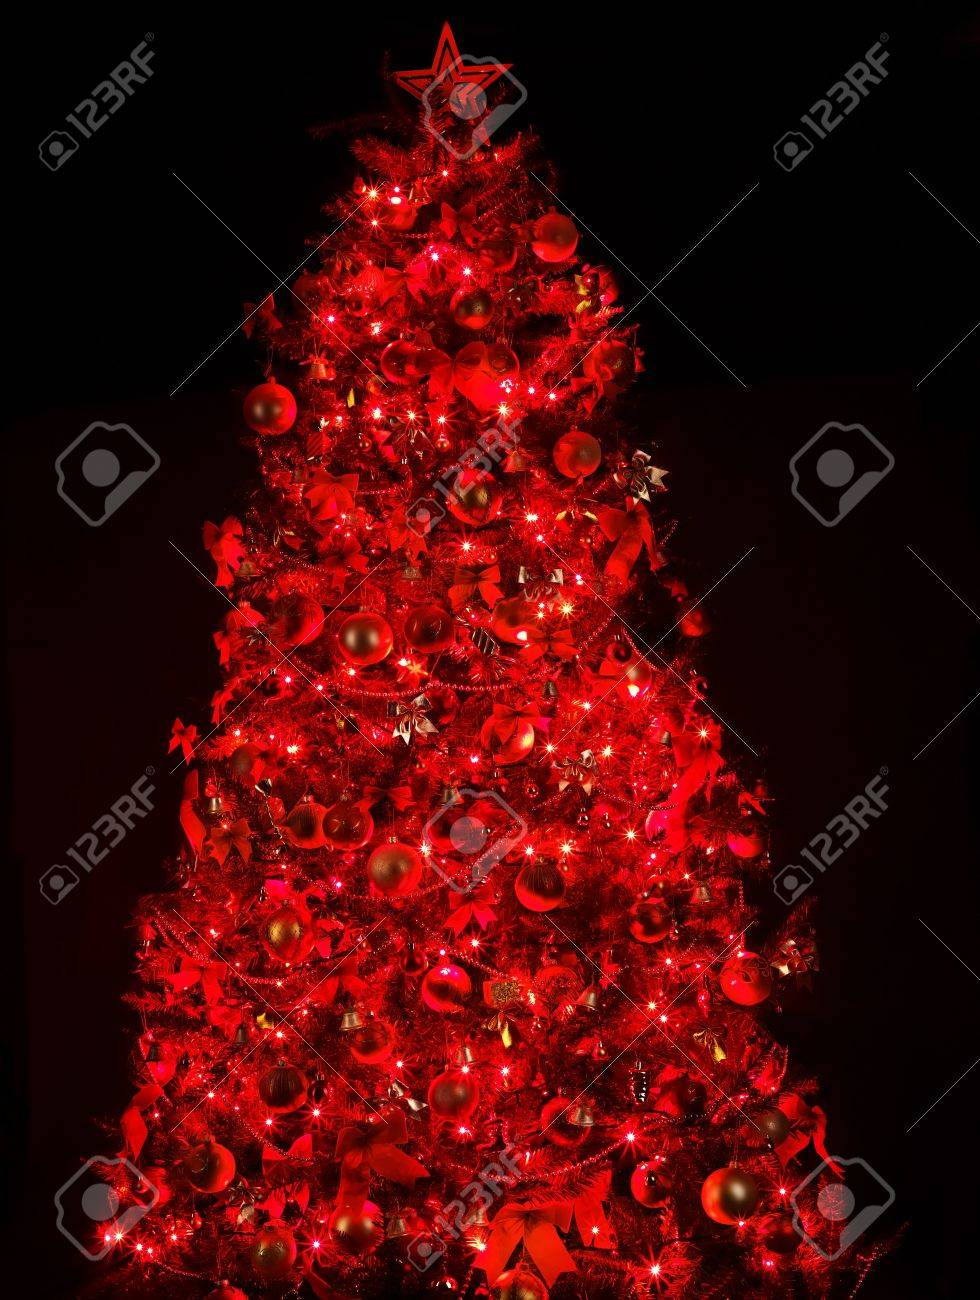 Christmas Tree With Light And Red Ball Black Background Stock Photo Picture And Royalty Free Image Image 11439425